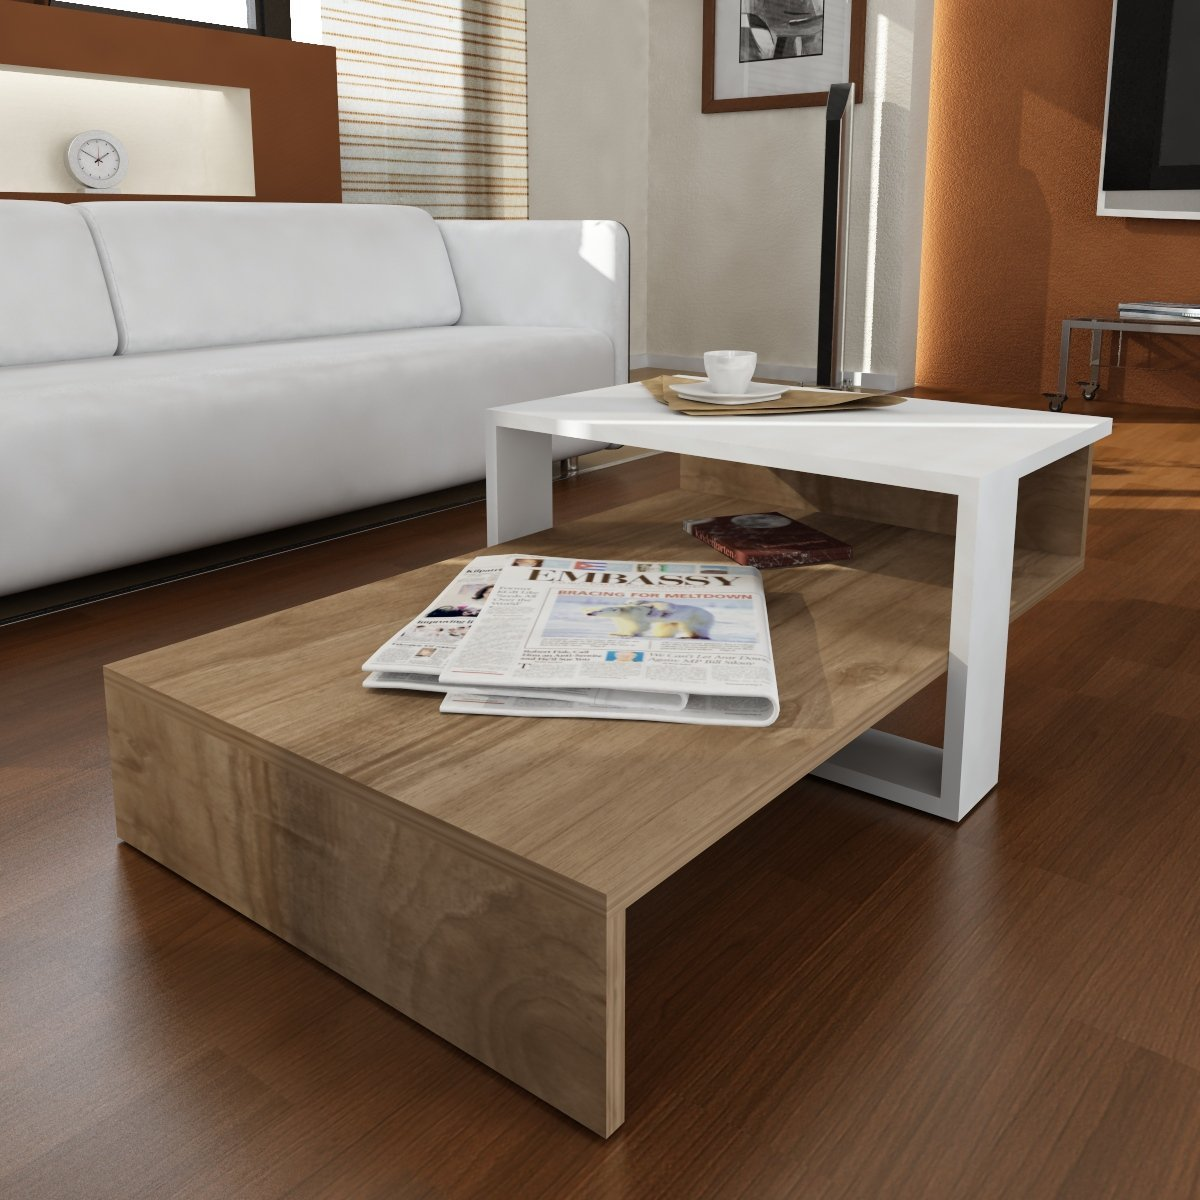 LaModaHome Modern Coffee Table, White-Brown Wooden Appearance - Cocktail Table with Storage, Multi Functional, Resistant - Best Choice for Home, Office, Living Room and More